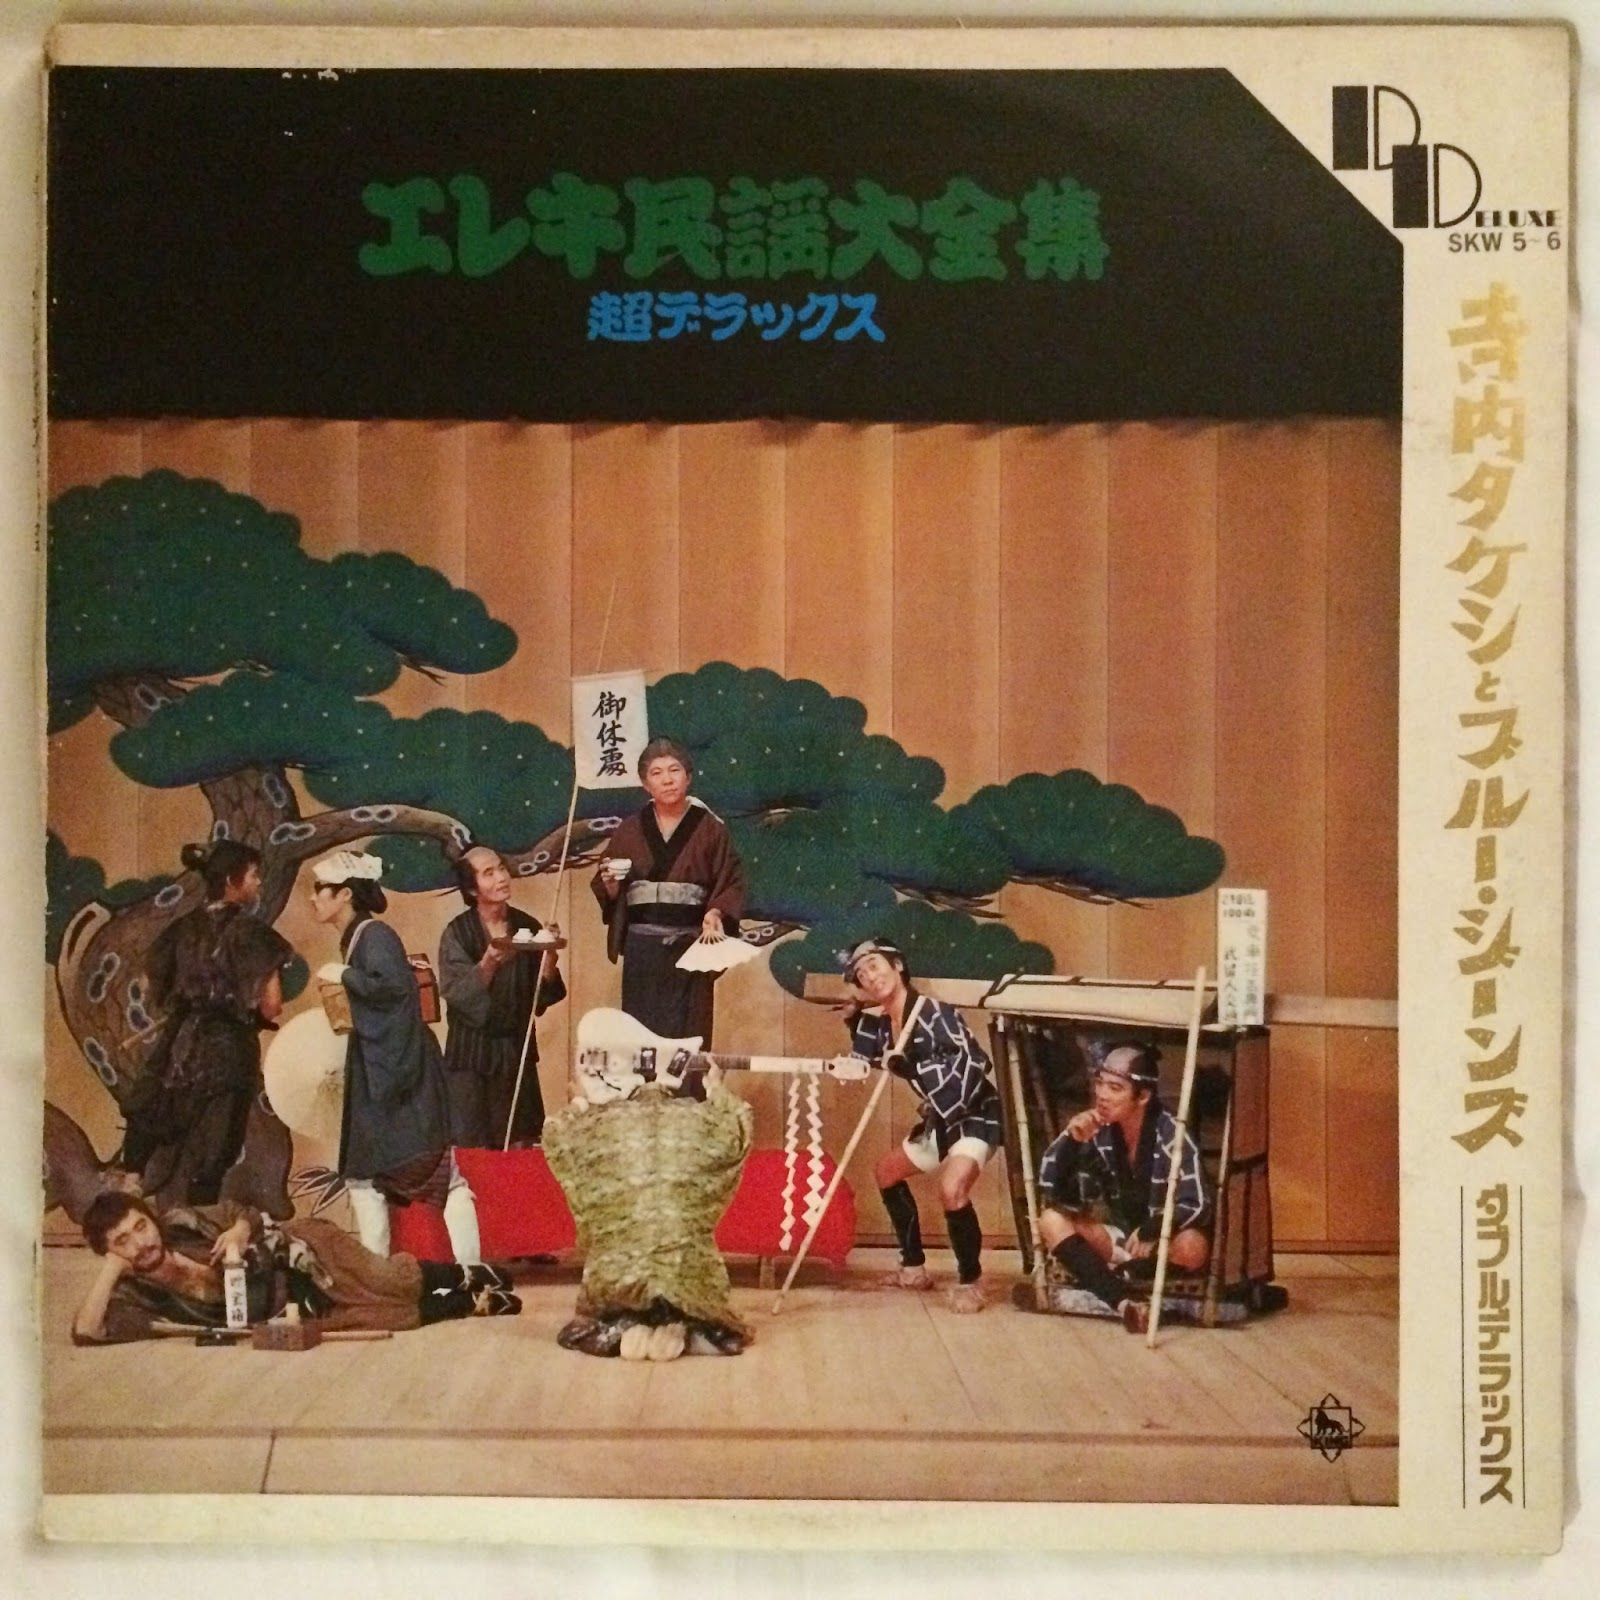 Takeshi Terauchi & Blue Jeans - Complete Collection of Electric Folk Songs